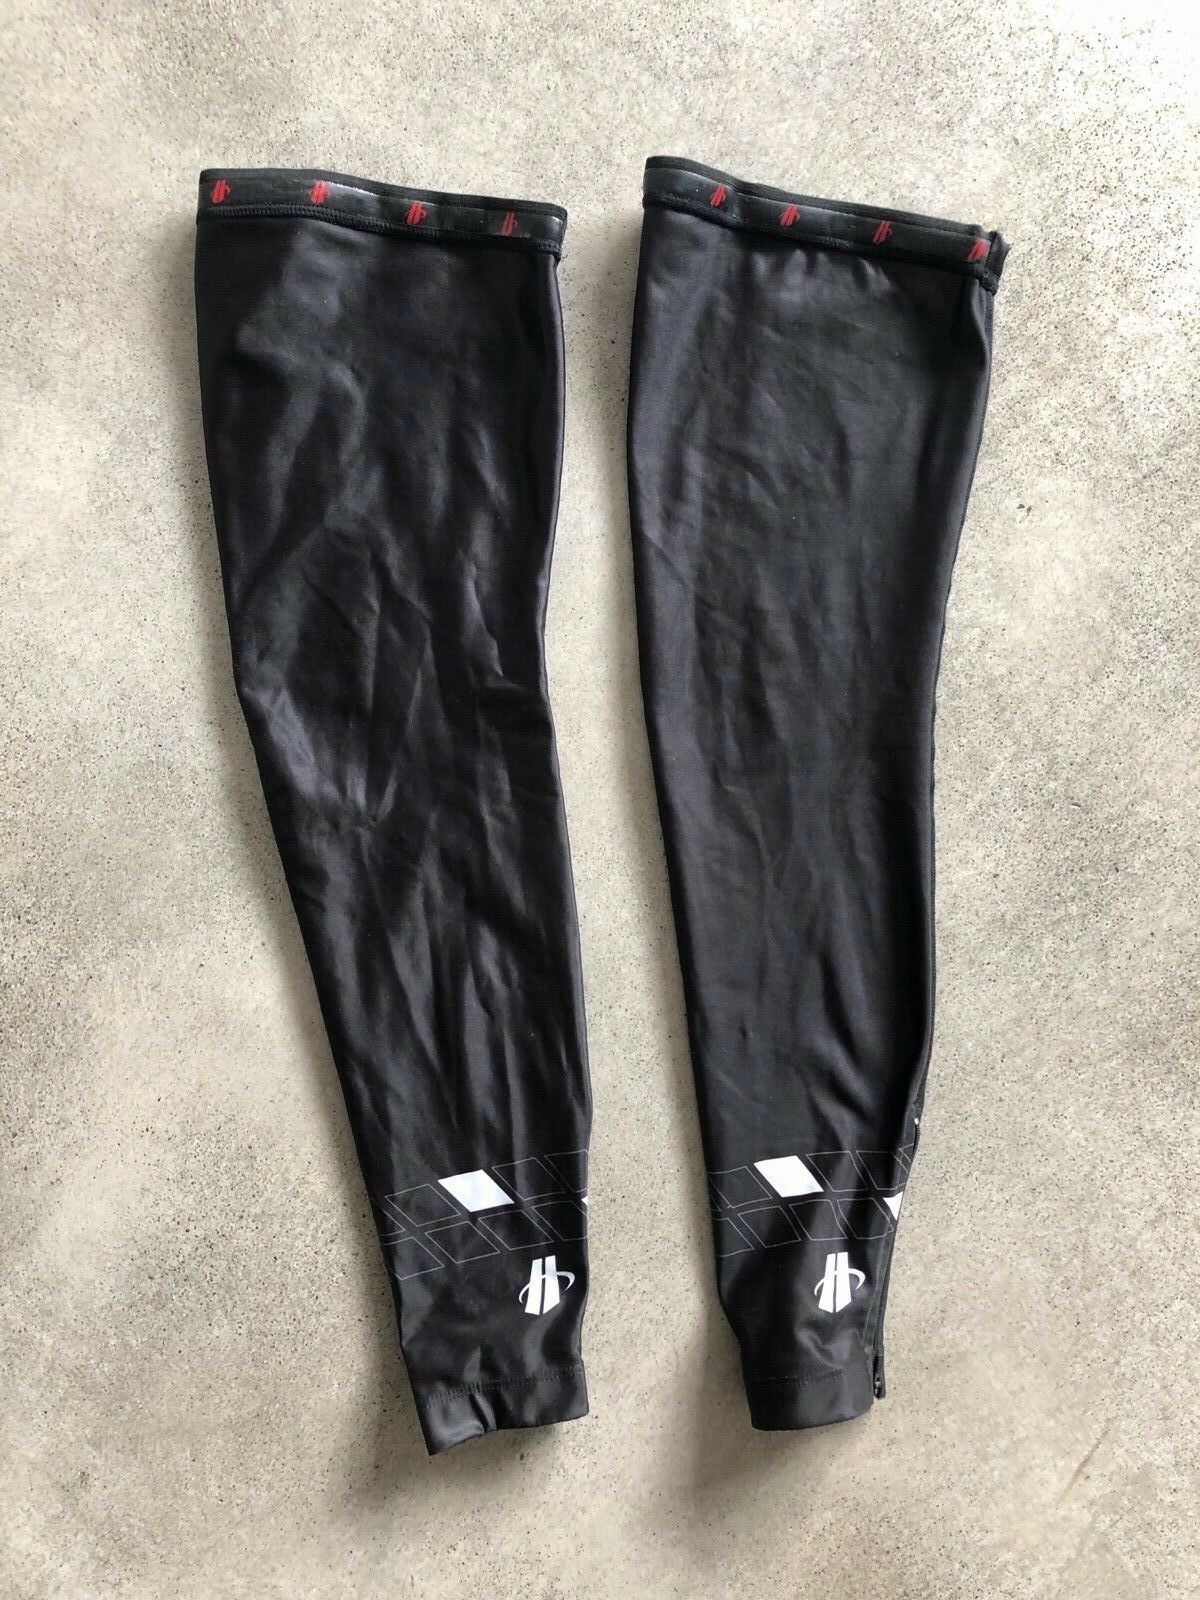 Hincapie Arenberg Leg Warmers Medium